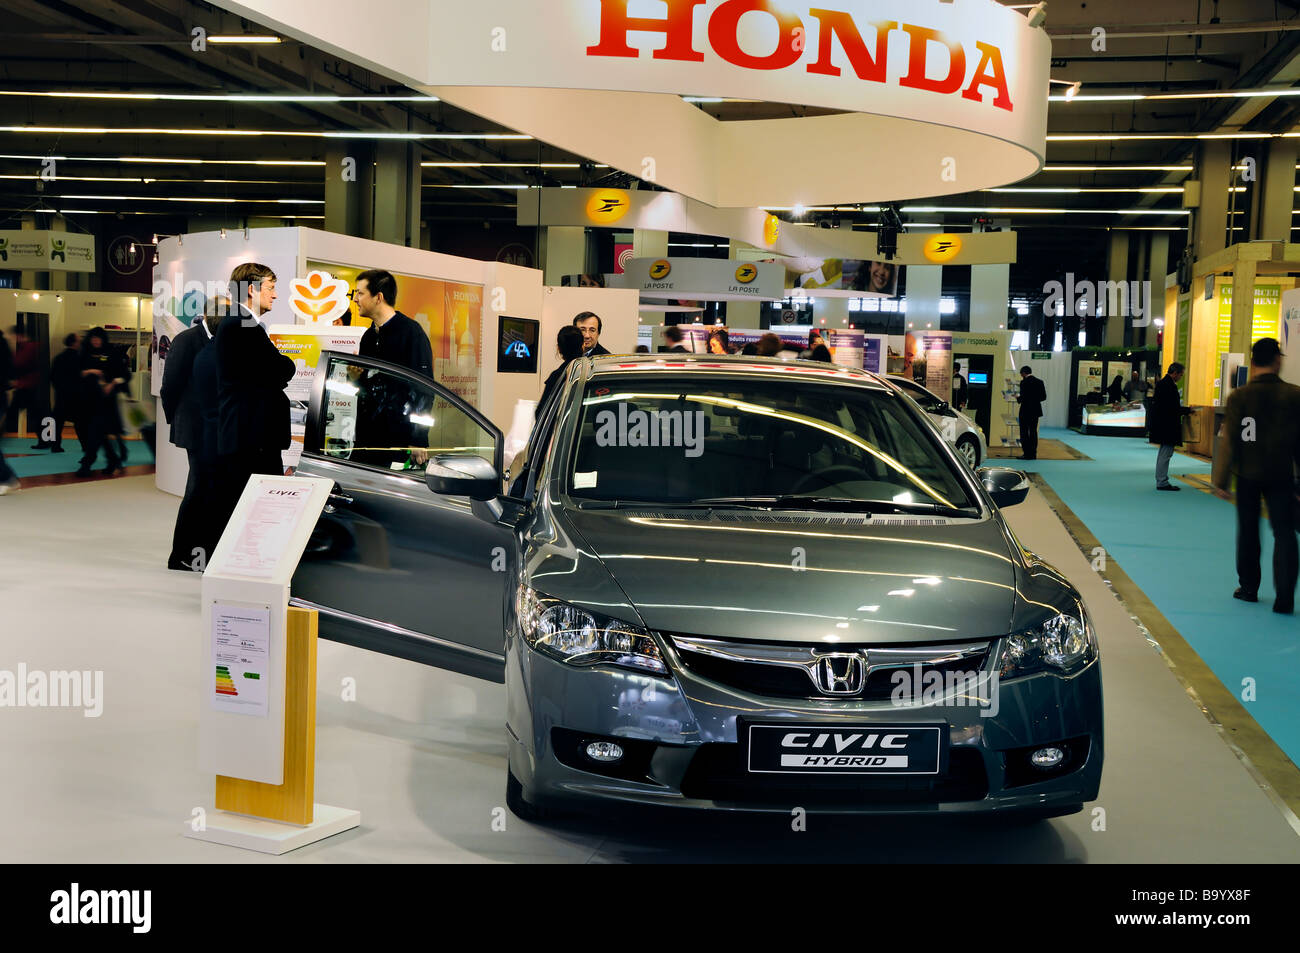 Paris France Businessmen Meeting Honda Car Company Sustainability Trade Show Salon Durable Civic Hybrid 2009